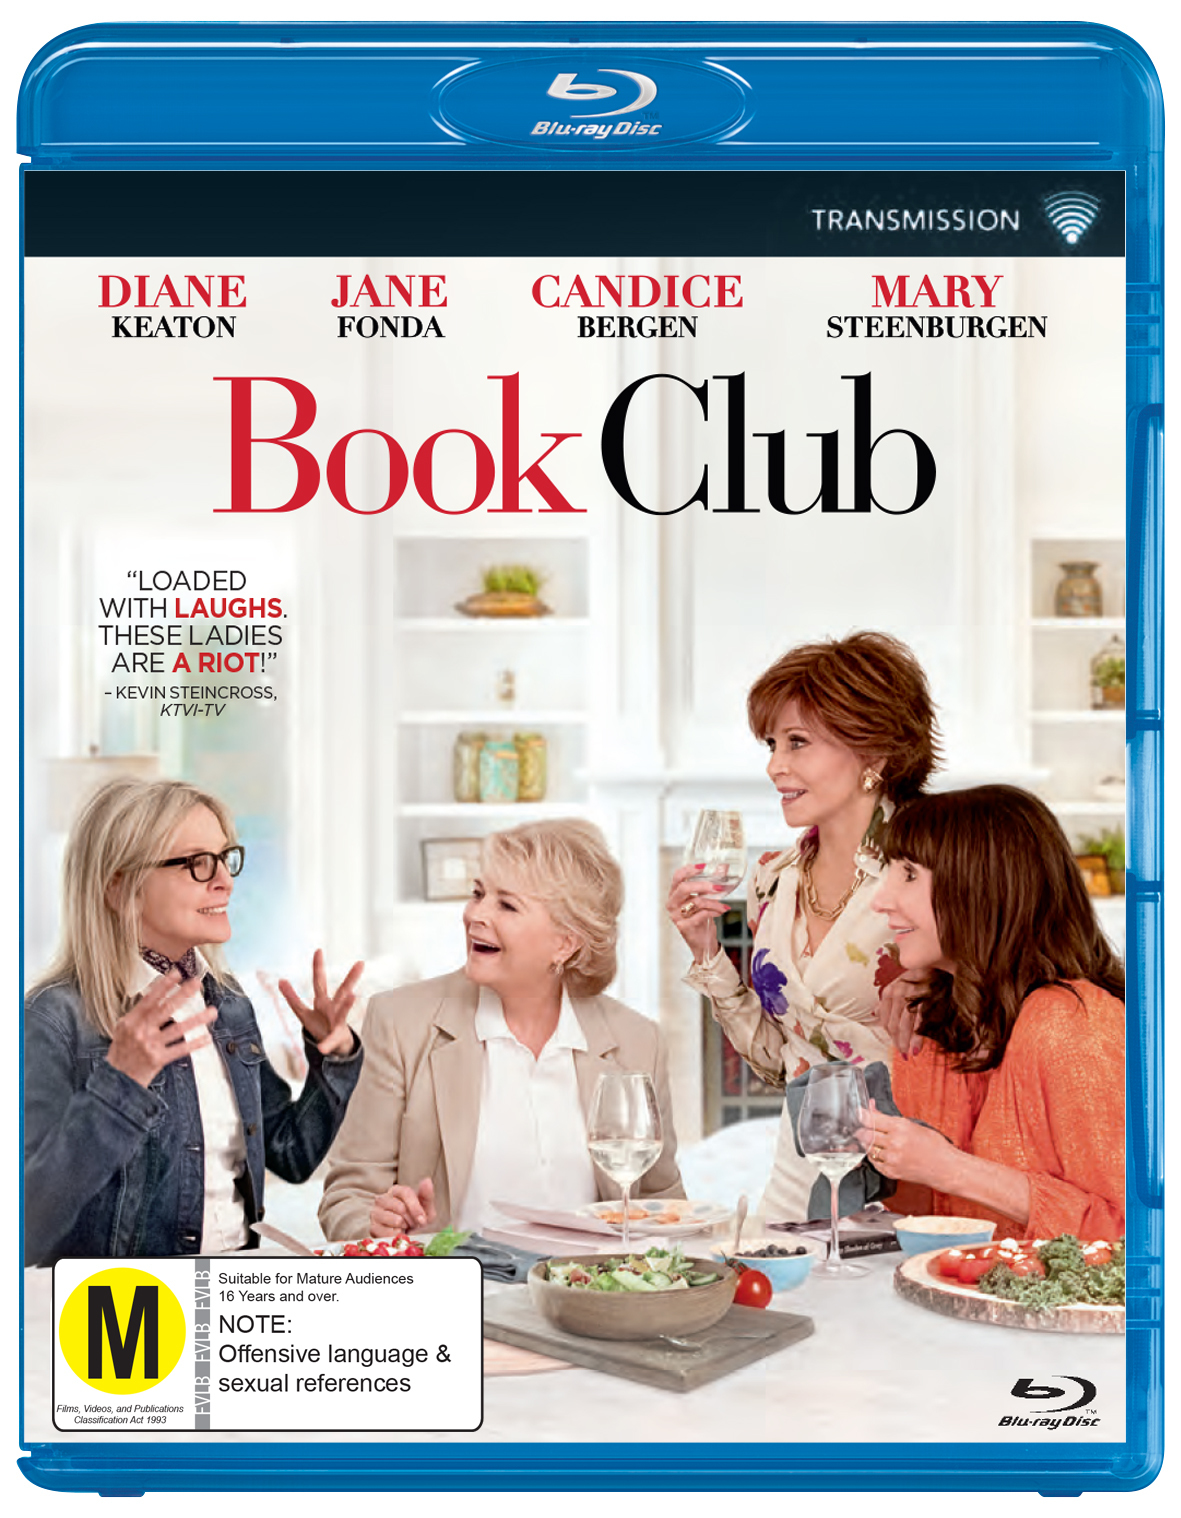 Book Club on Blu-ray image